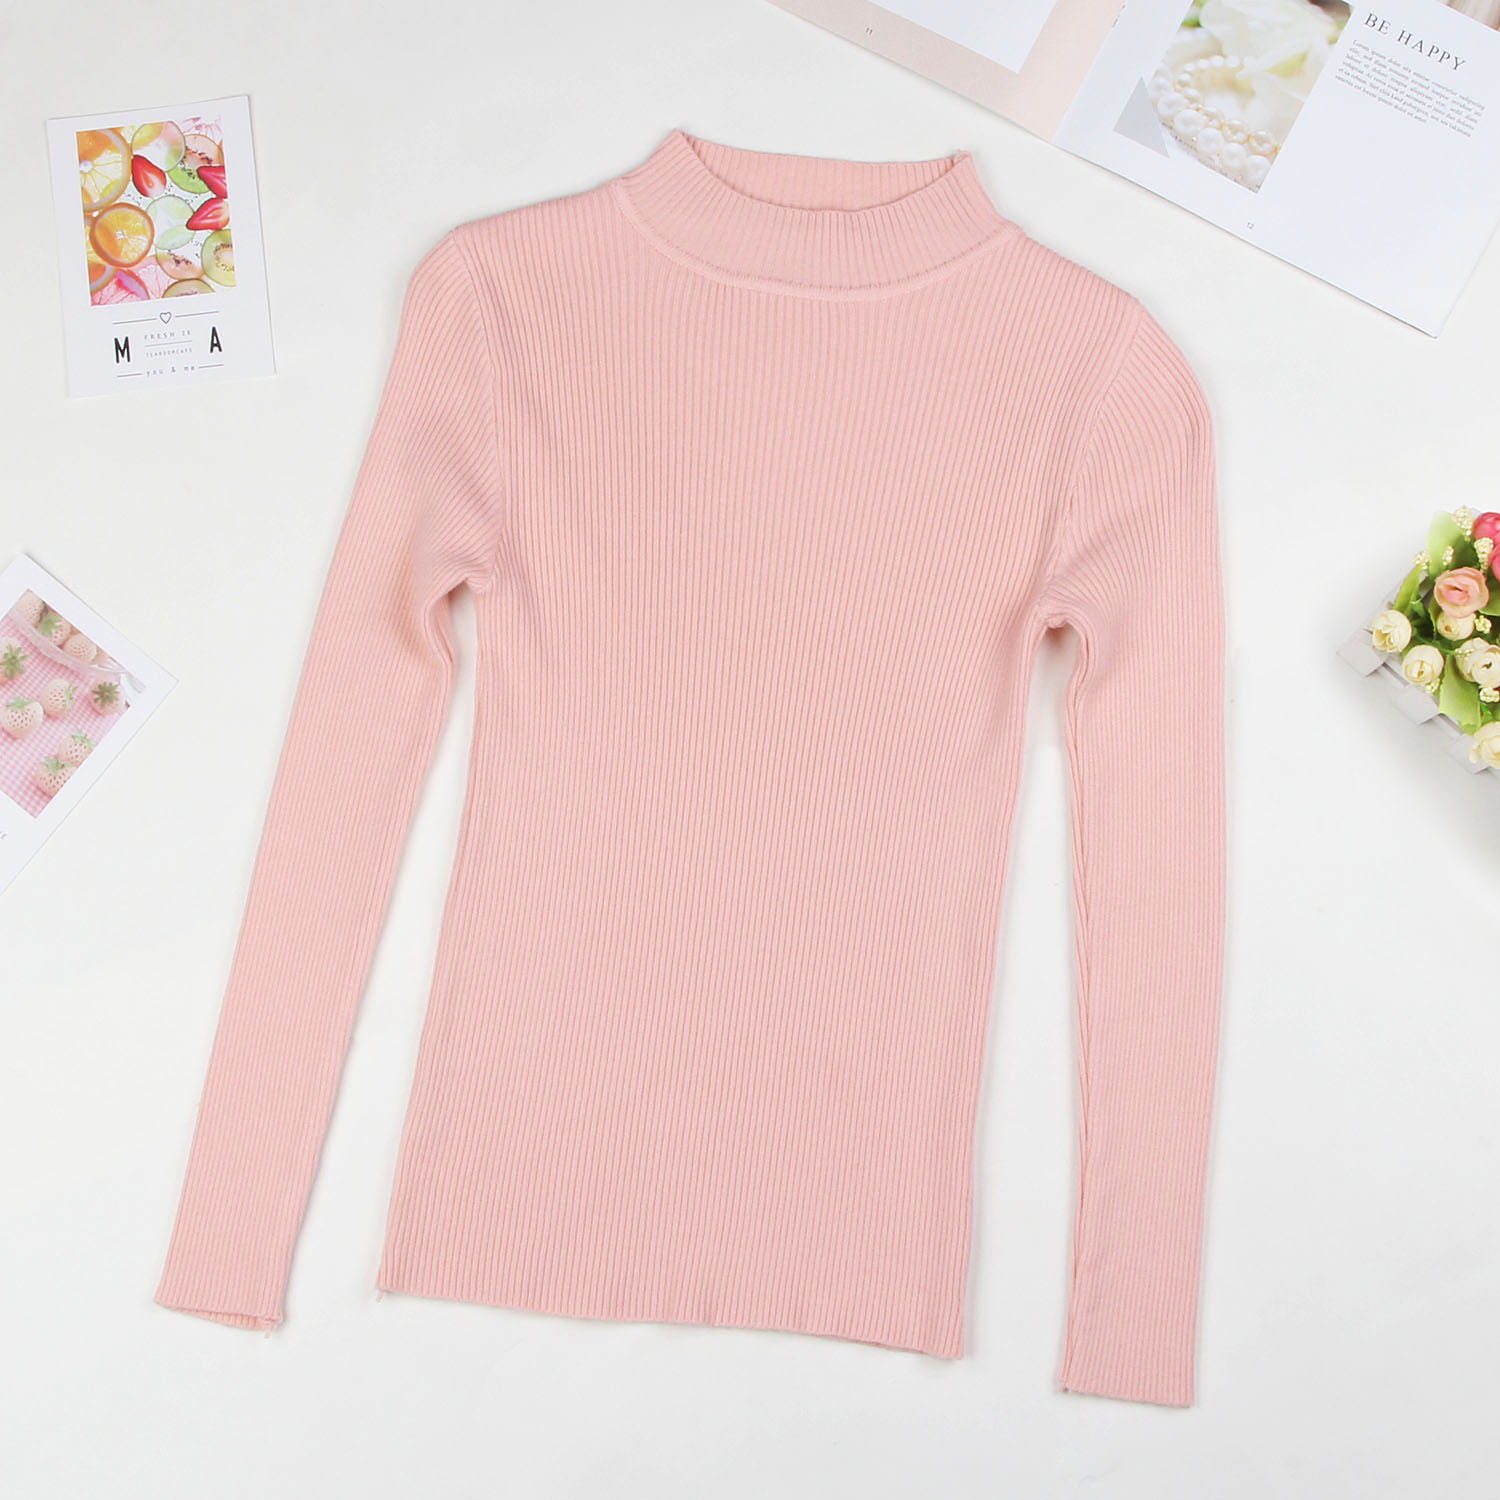 DeRuiLaDy 19 Fall New Women Turtleneck Sweater Pullover Black Pink Knitted Slim Sweaters Tops Winter Casual Sweater Jumper Top 15